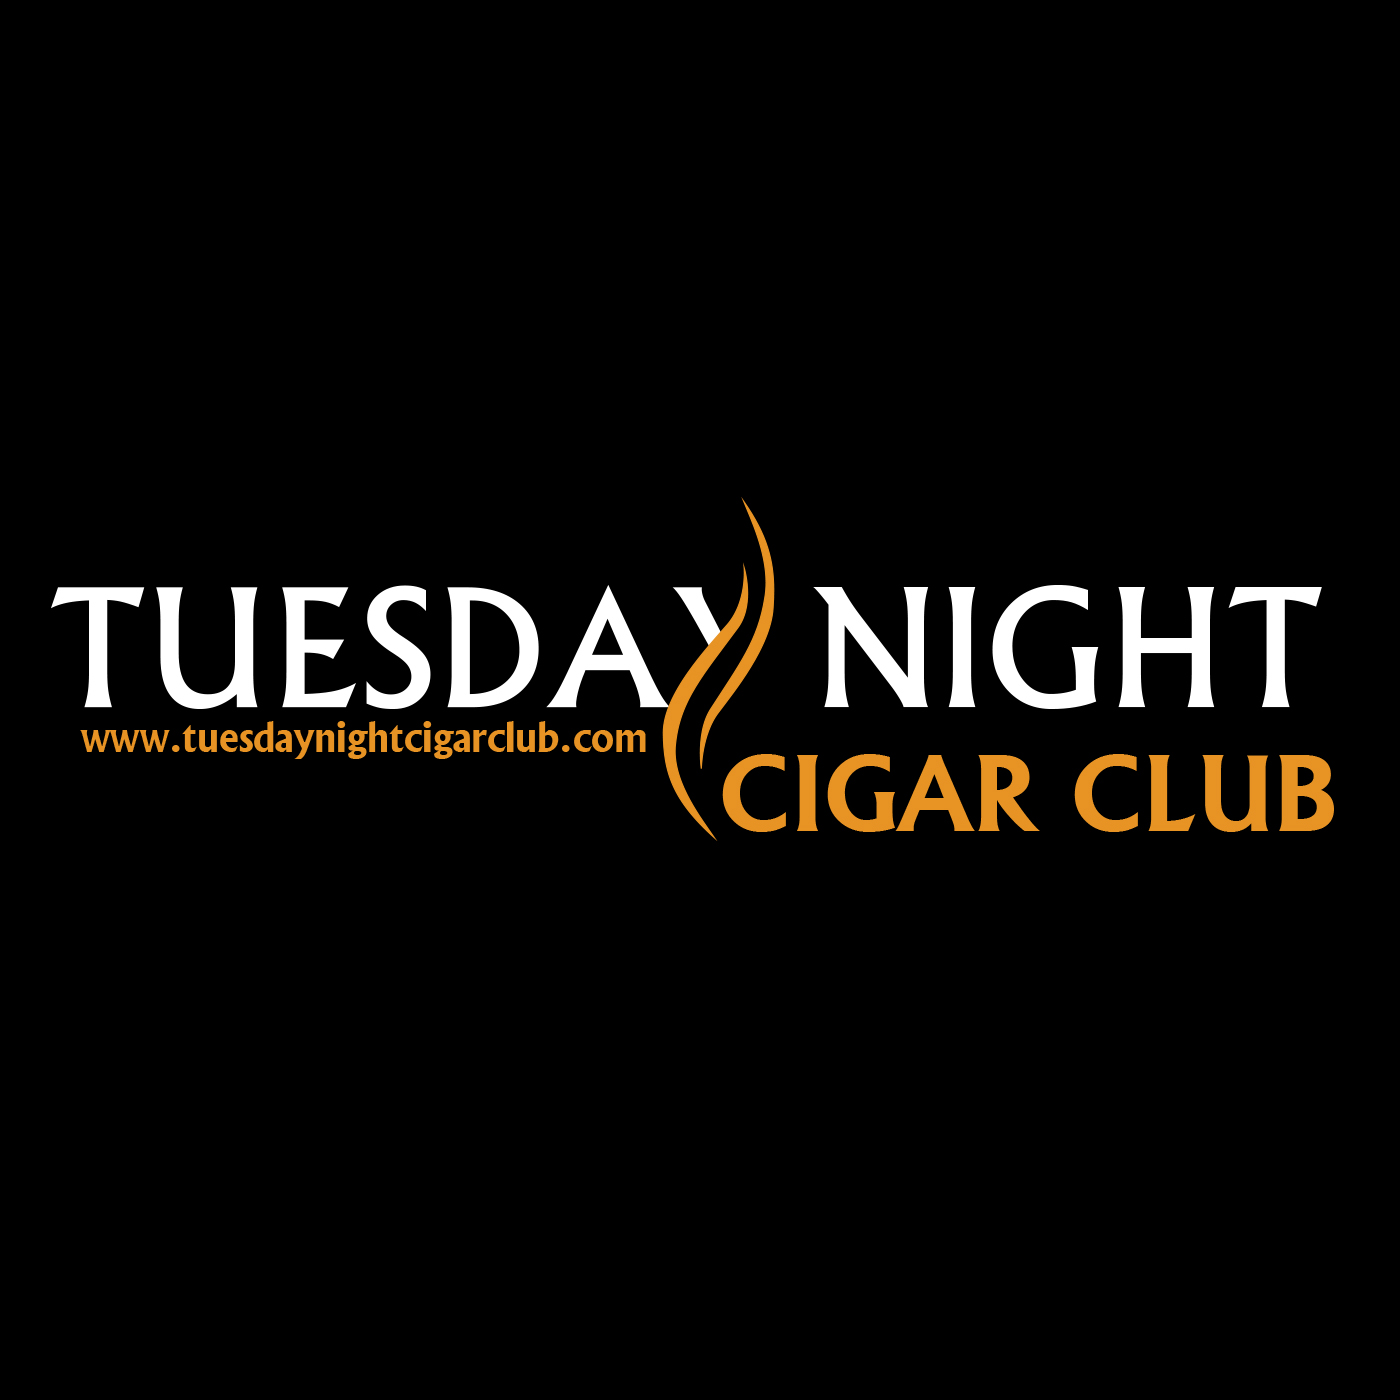 Tuesday Night Cigar Club